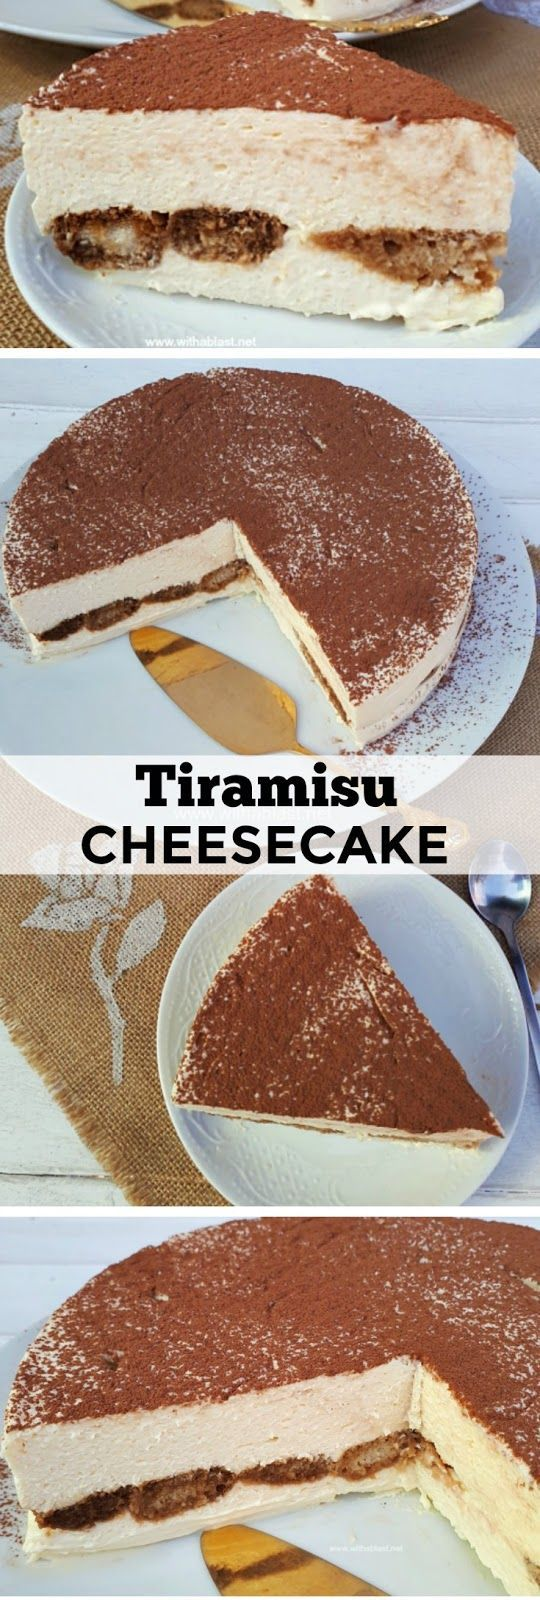 Most decadent ! The creamiest No-Bake Tiramisu Cheesecake ever and requires the minimum prepping ! #NoBake #Tiramisu #Cheesecake